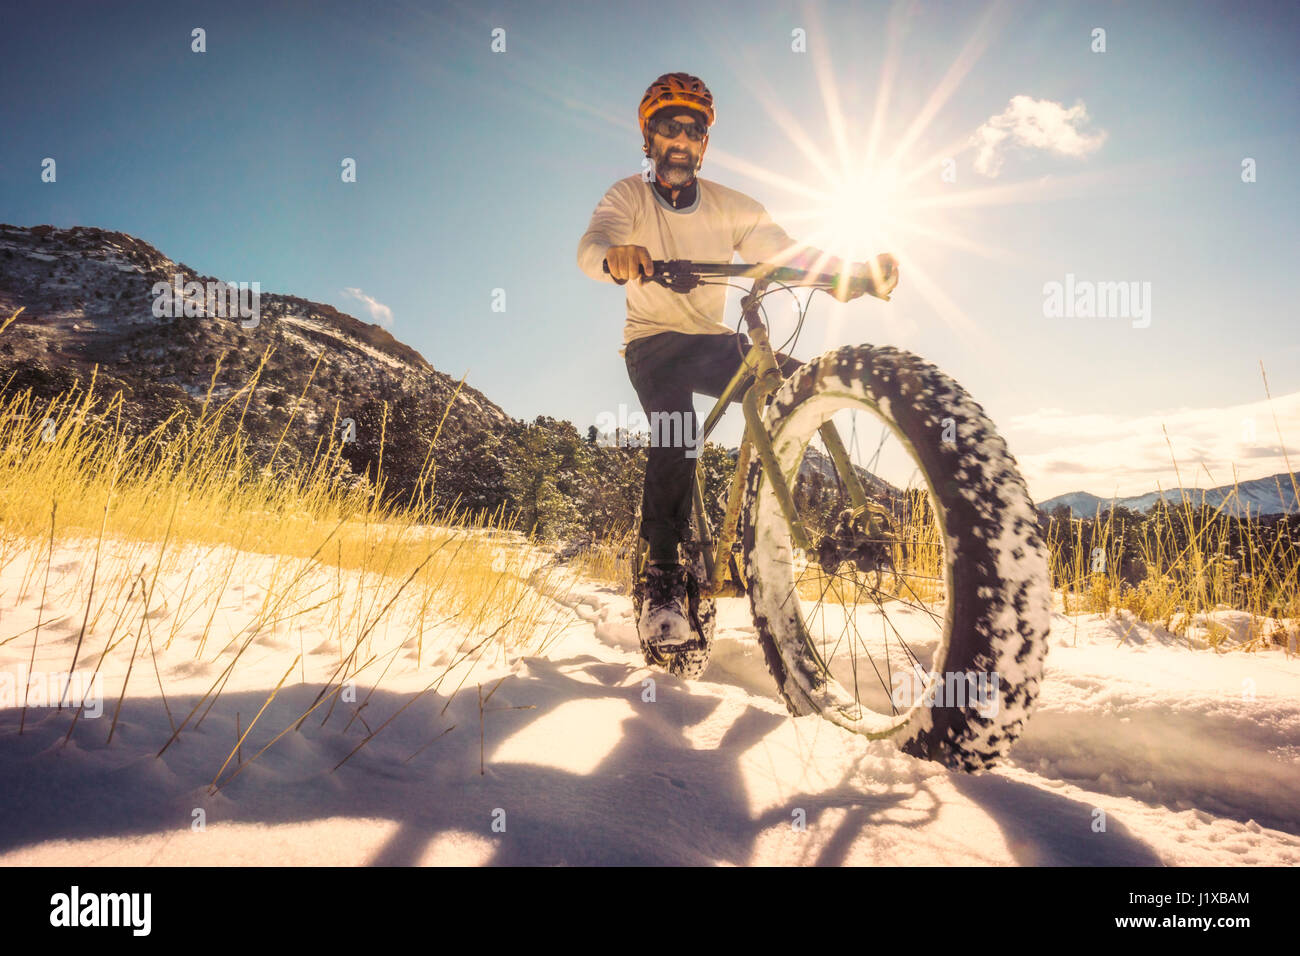 Self portrait (Whit Richardson) riding a fatbike in the Horse Gulch area, Durango, CO. - Stock Image